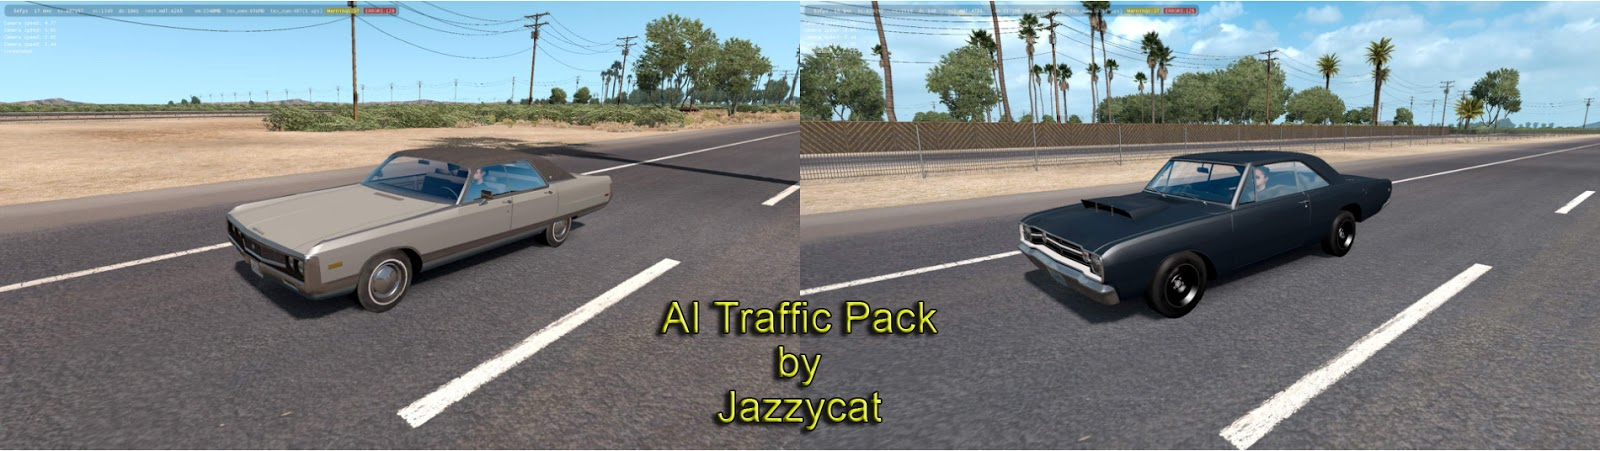 ATS - Classic Cars AI Traffic Pack v3 2 by Jazzycat